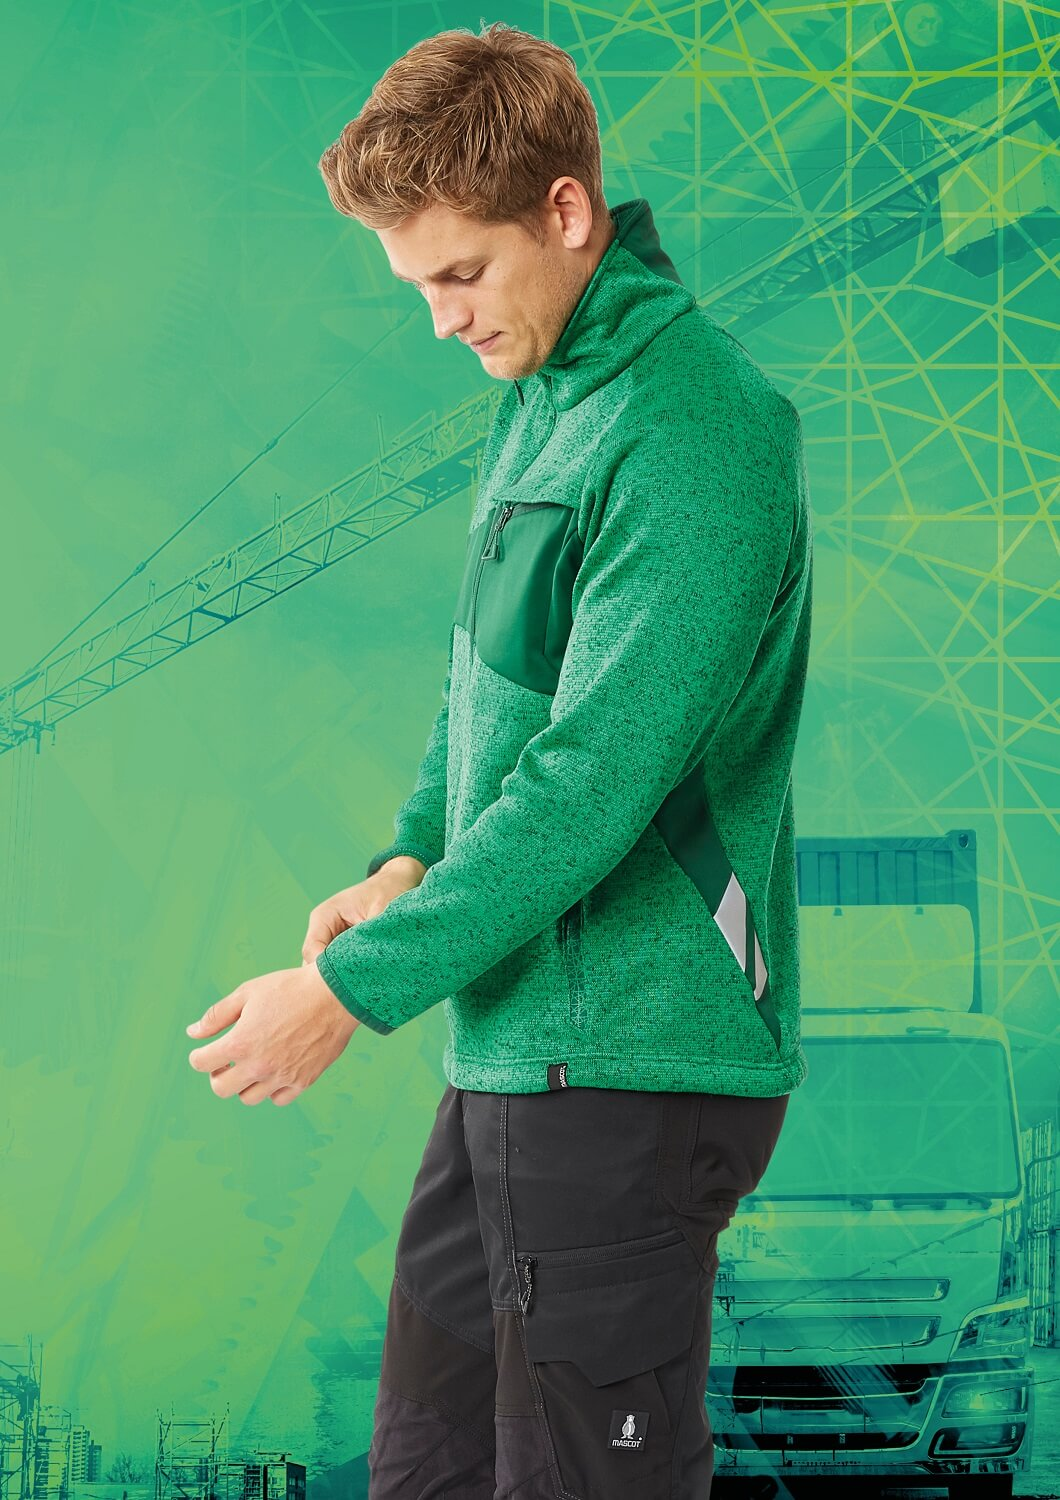 Pants & Work Jumper - MASCOT® ACCELERATE Brand DNA - Green